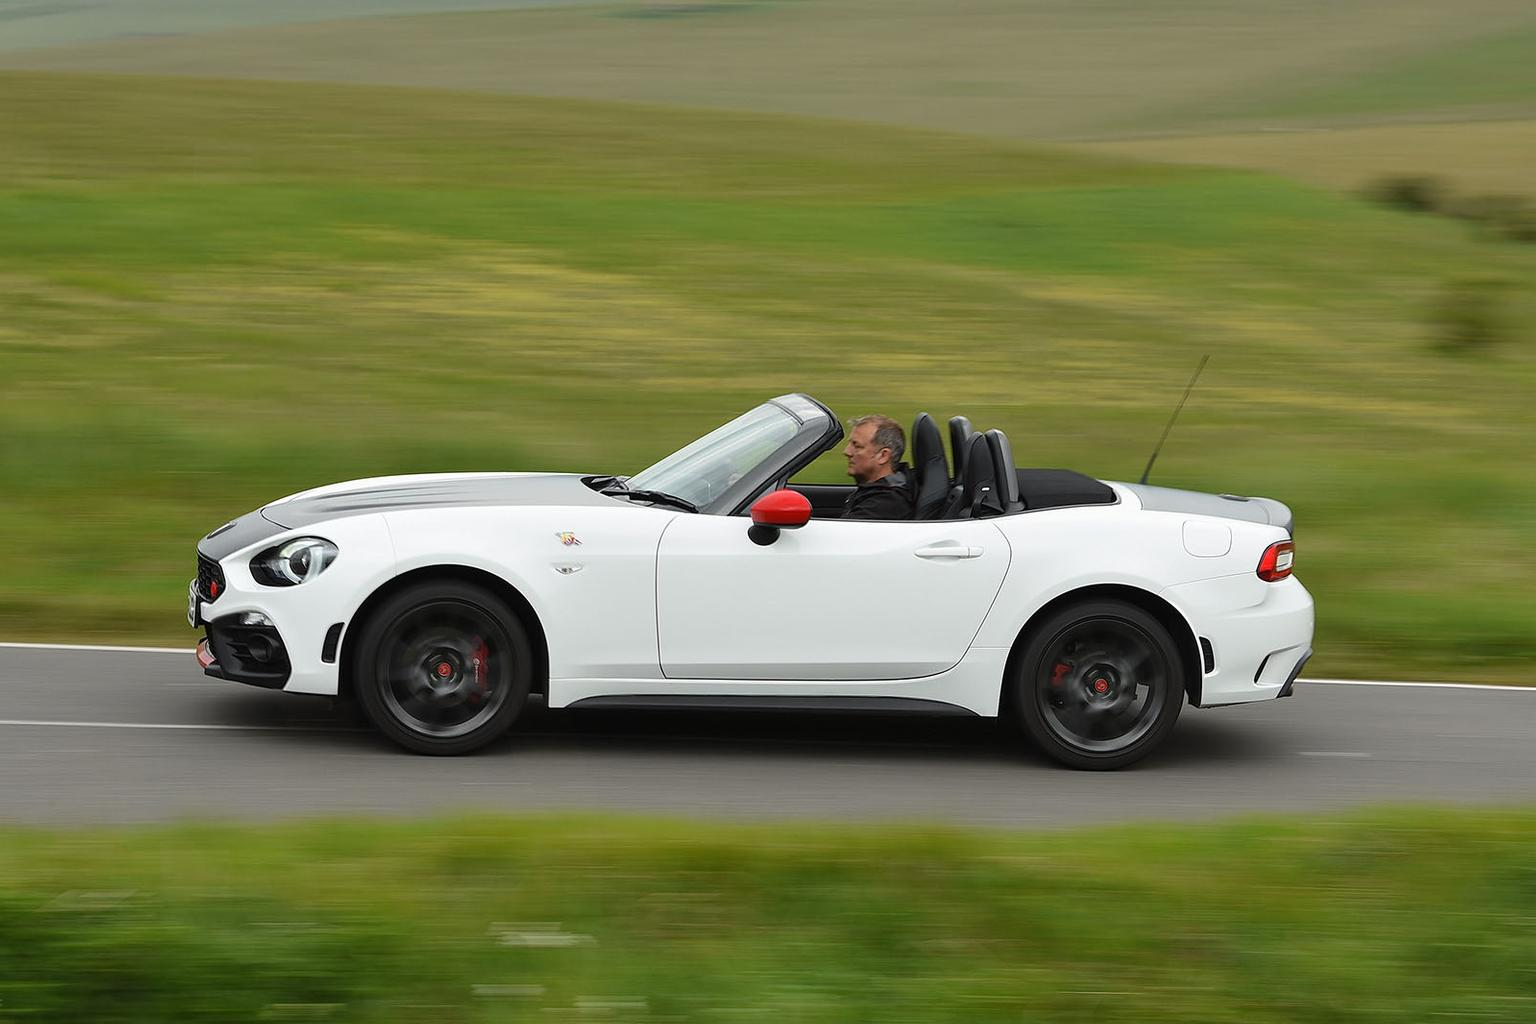 New Abarth 124 Spider vs Audi TT Roadster